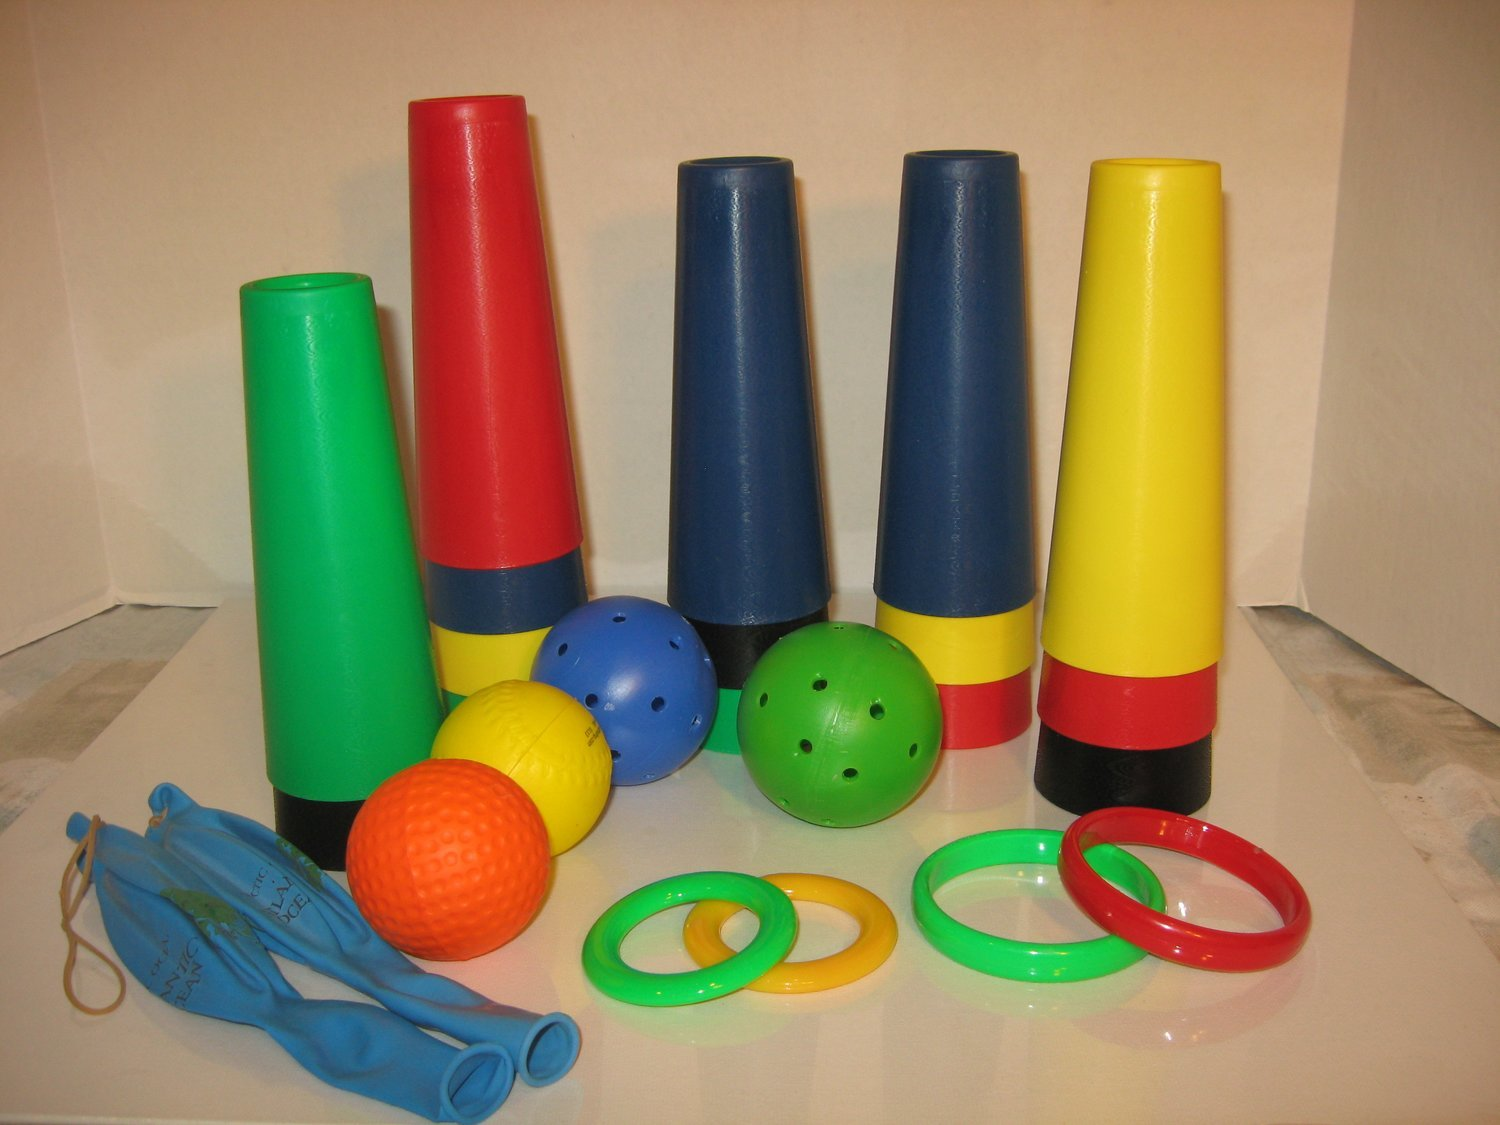 30 Therapy Rehab Cones & 10 Accessories